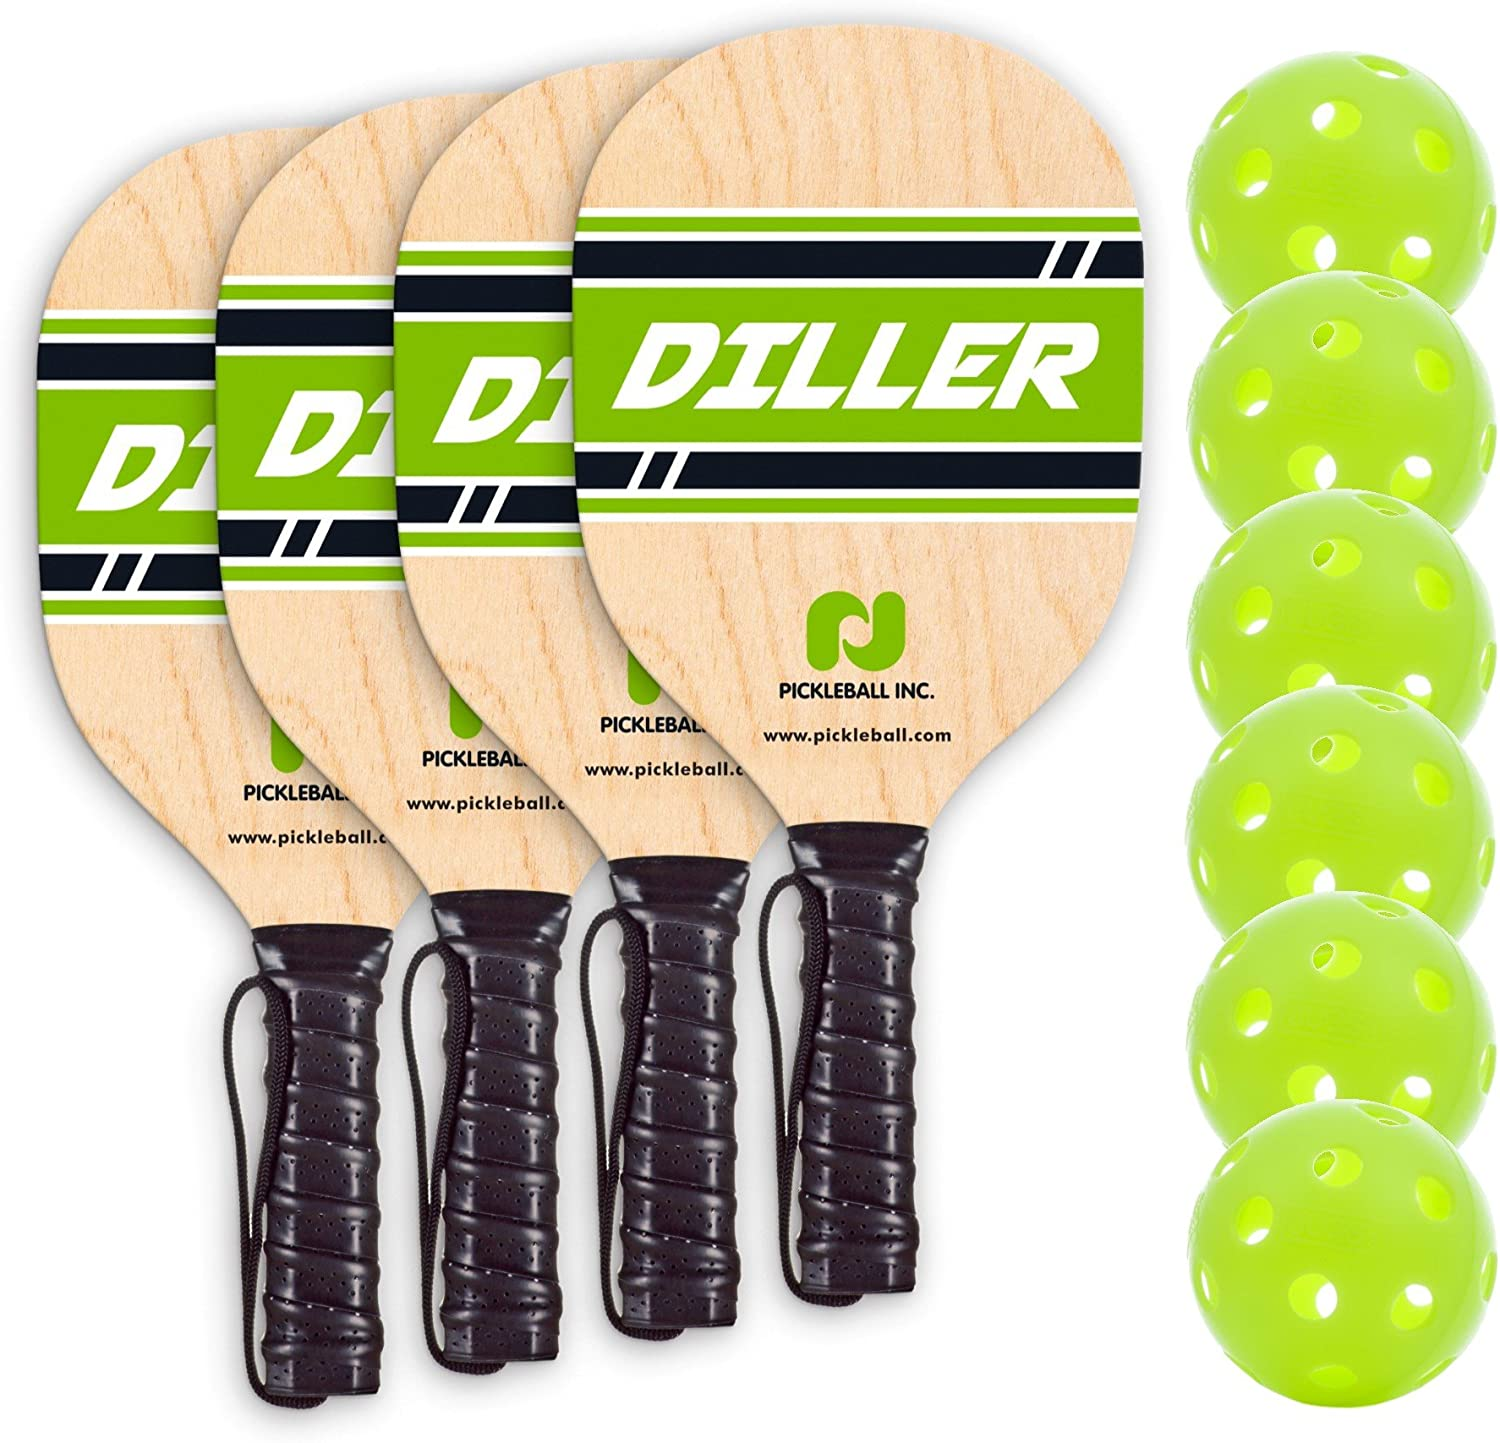 Diller Pickleball Paddle 4 Player Bundle (Set Includes 4 Paddles & 6 Balls) : Sports & Outdoors